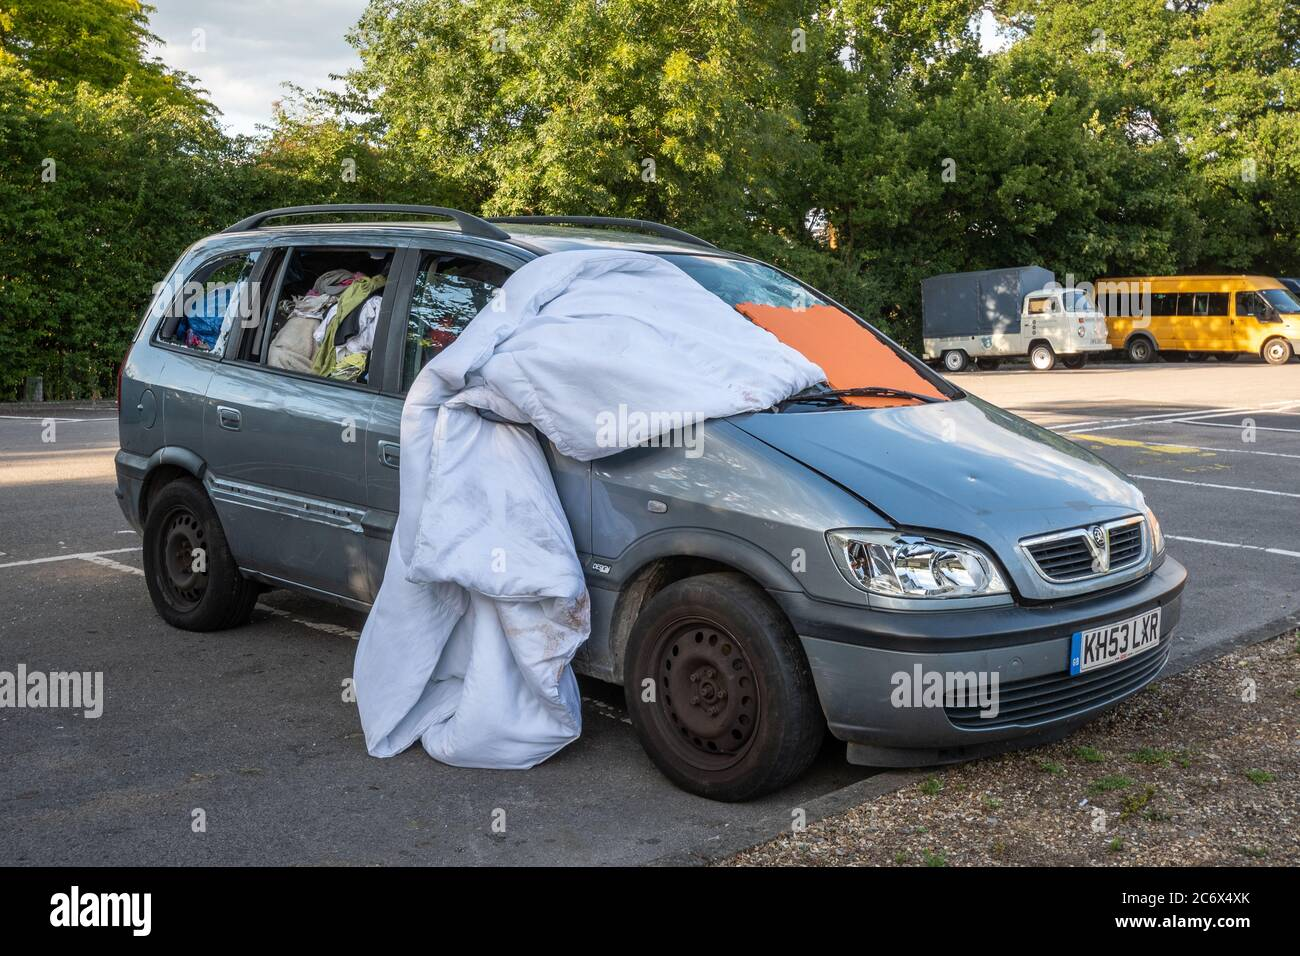 a-car-being-lived-in-by-a-homeless-person-full-of-clothes-and-belongings-with-the-front-windscreen-covered-uk-2C6X4XK.jpg